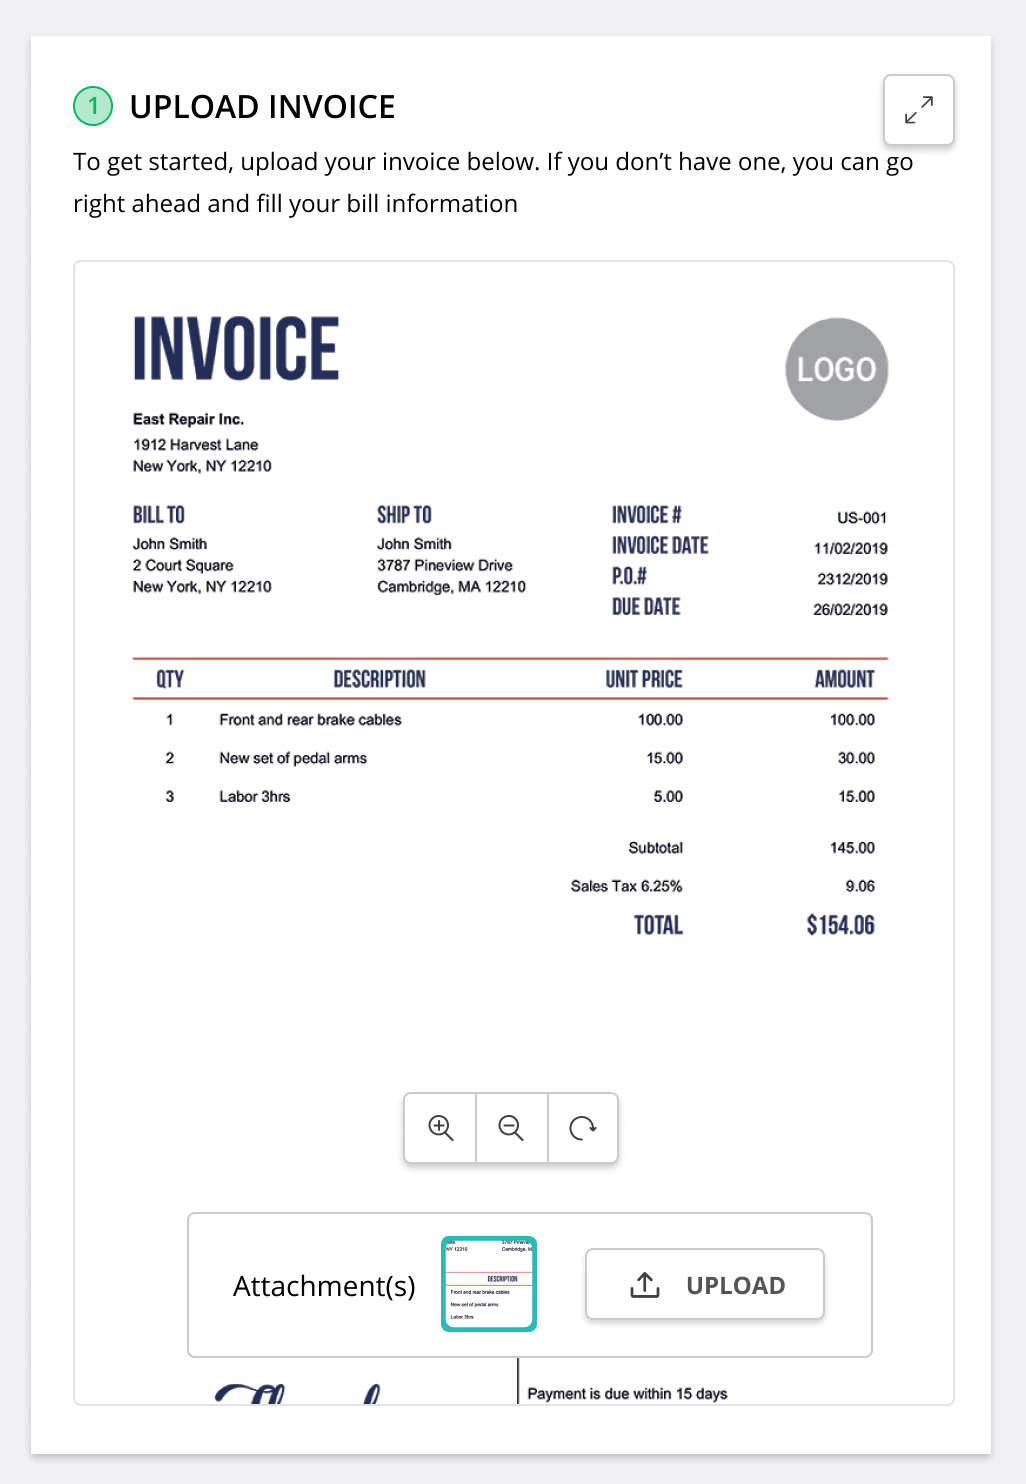 Invoice_feature.png